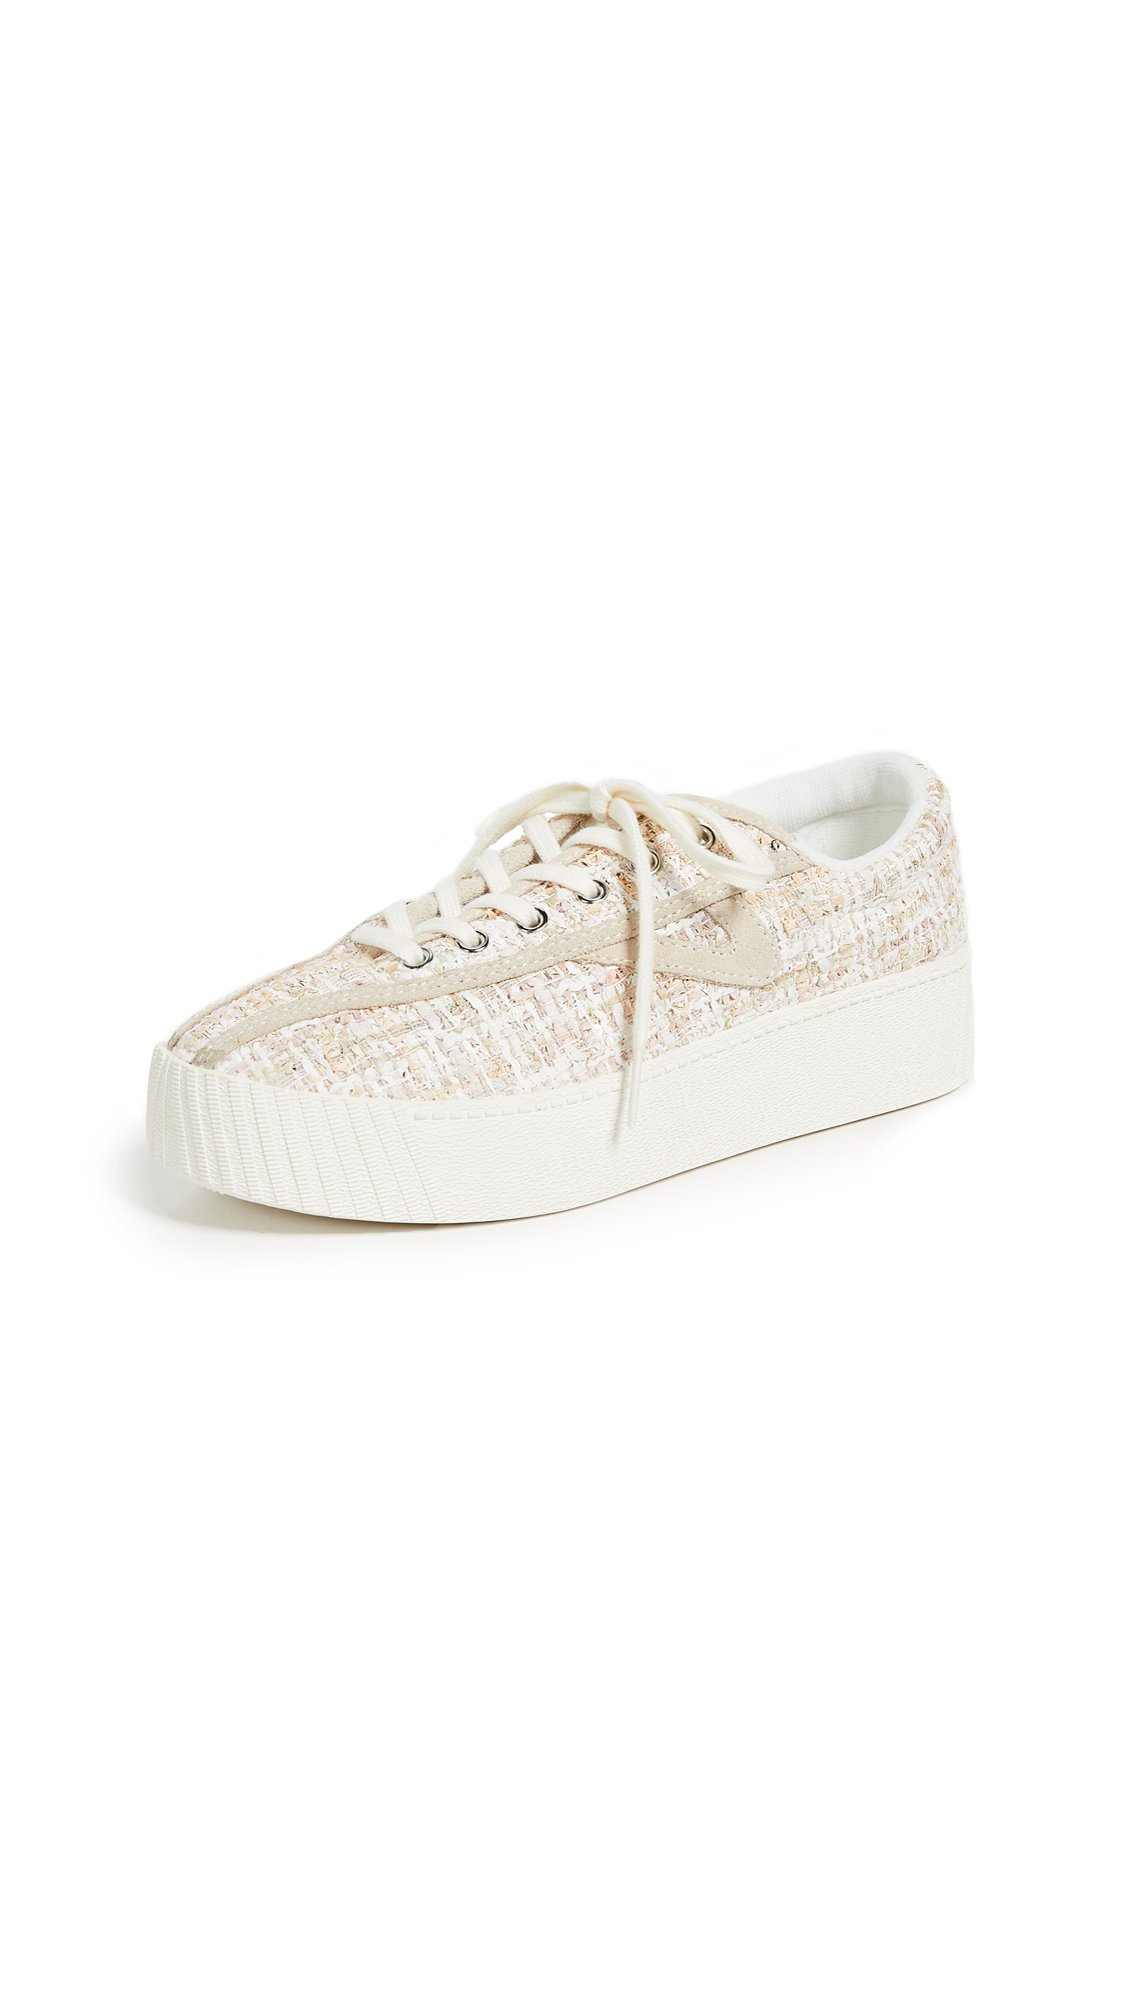 Tretorn Bold Sneakers - Cream